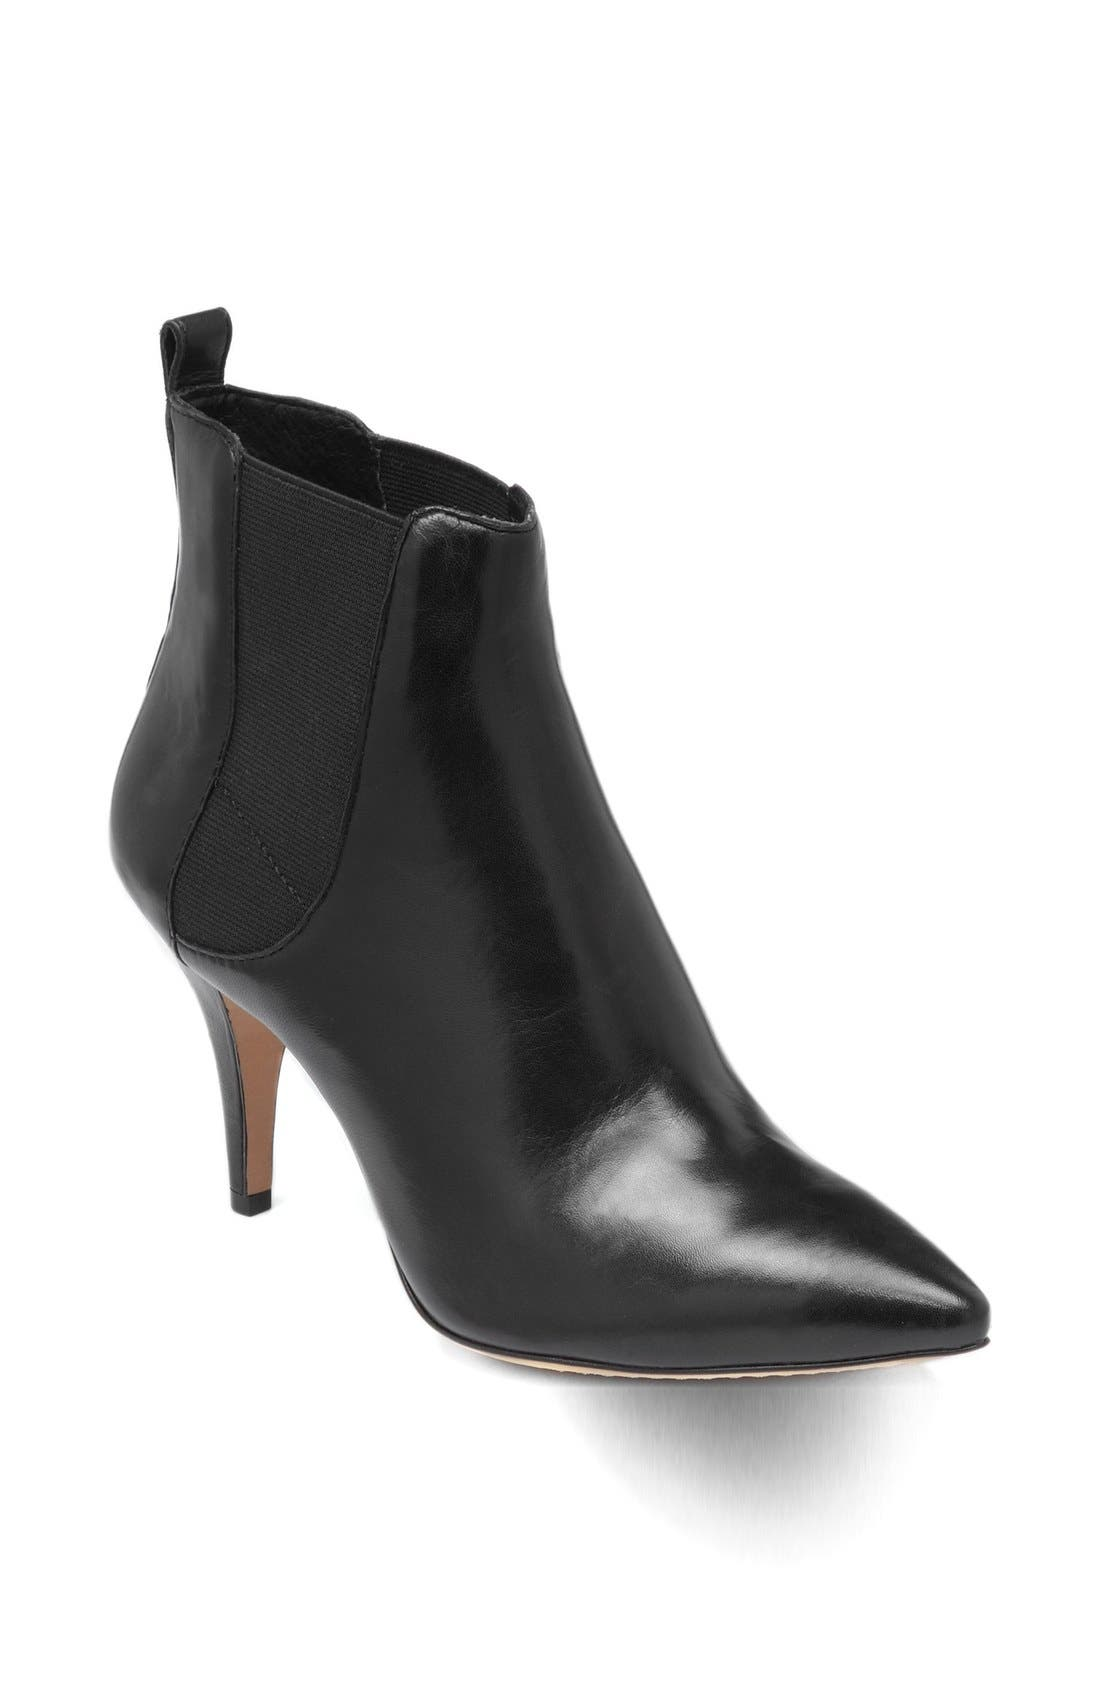 Alternate Image 1 Selected - Vince Camuto 'Onya' Bootie